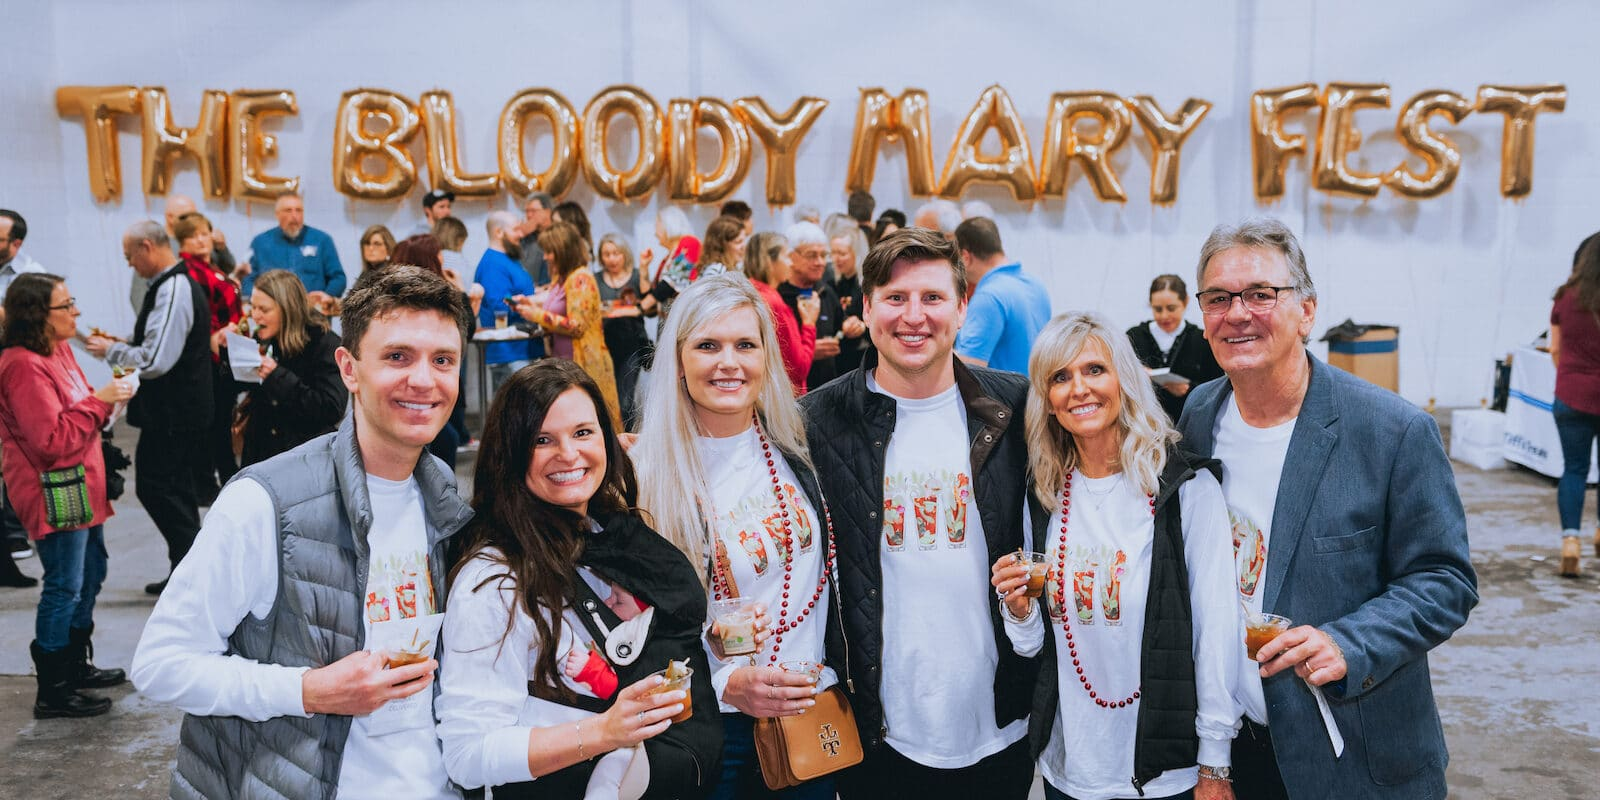 Image of people at the Bloody Mary Festival in Colorado